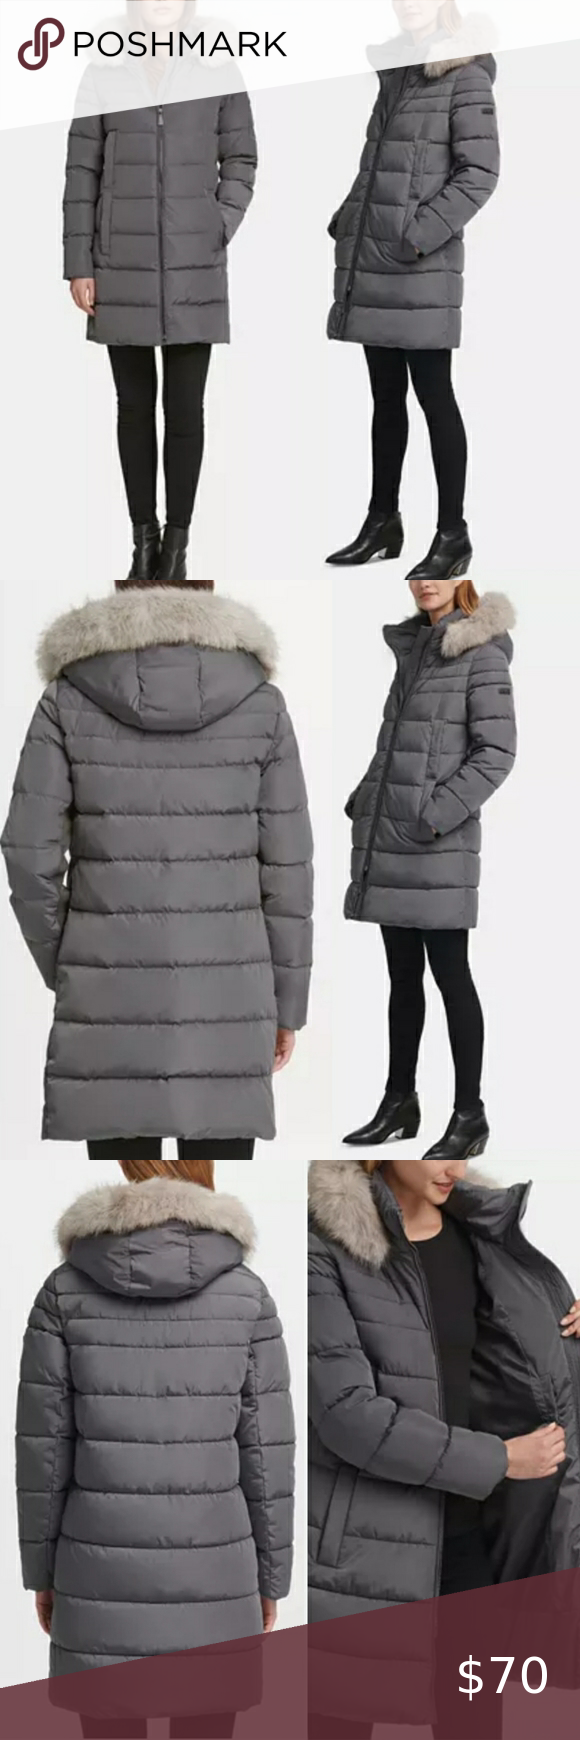 Dkny New Fur Hooded Puffer Coat Size Xs Puffer Coat Faux Fur Hooded Puffer Coat Dkny [ 1740 x 580 Pixel ]